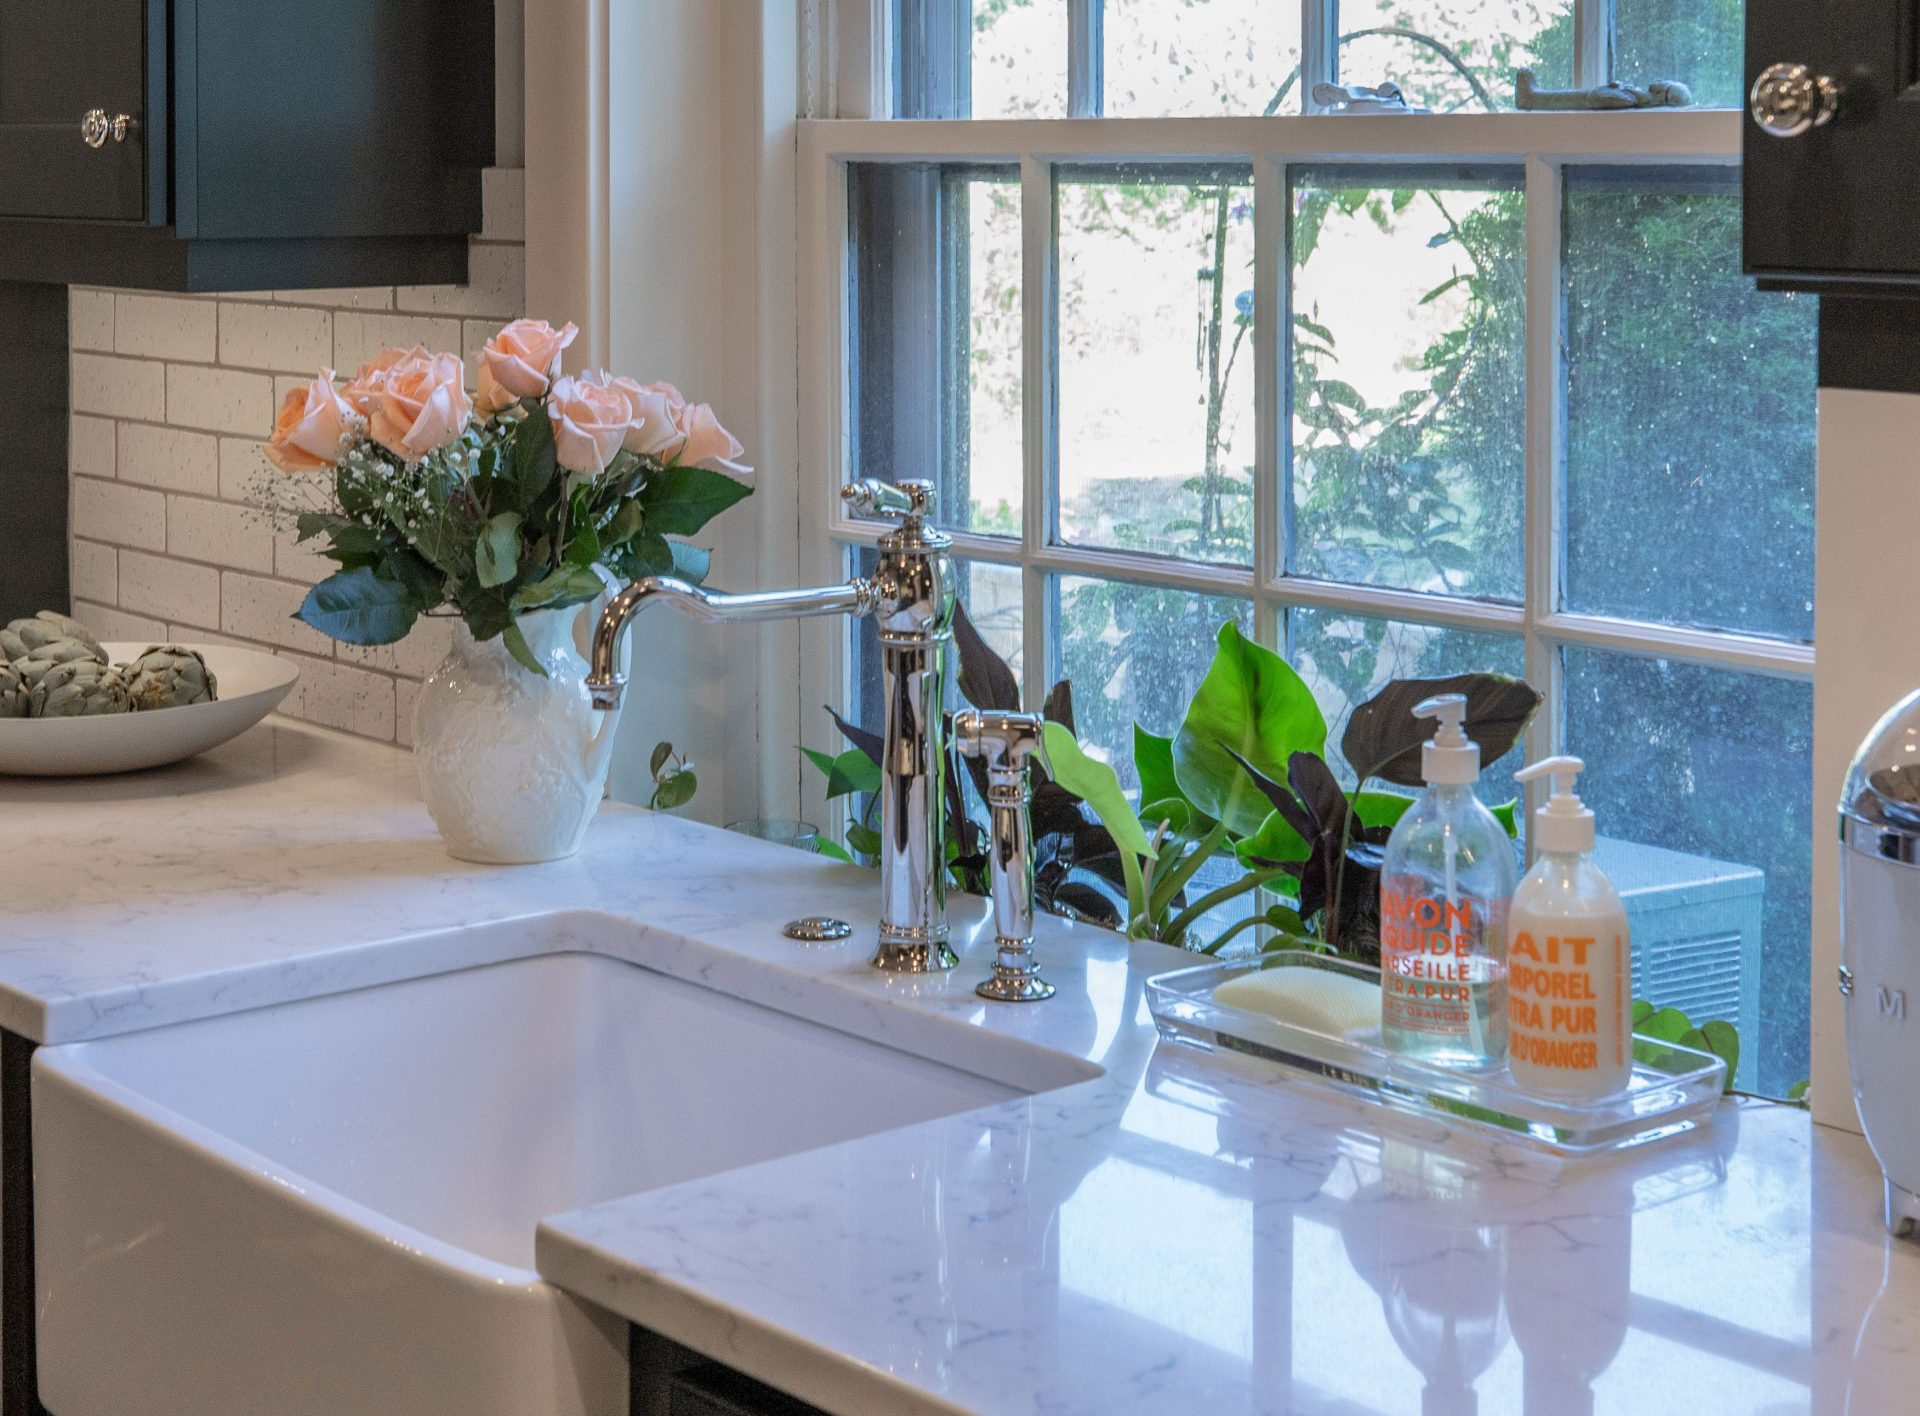 Kitchen Faucet from Performance Kitchens & Home